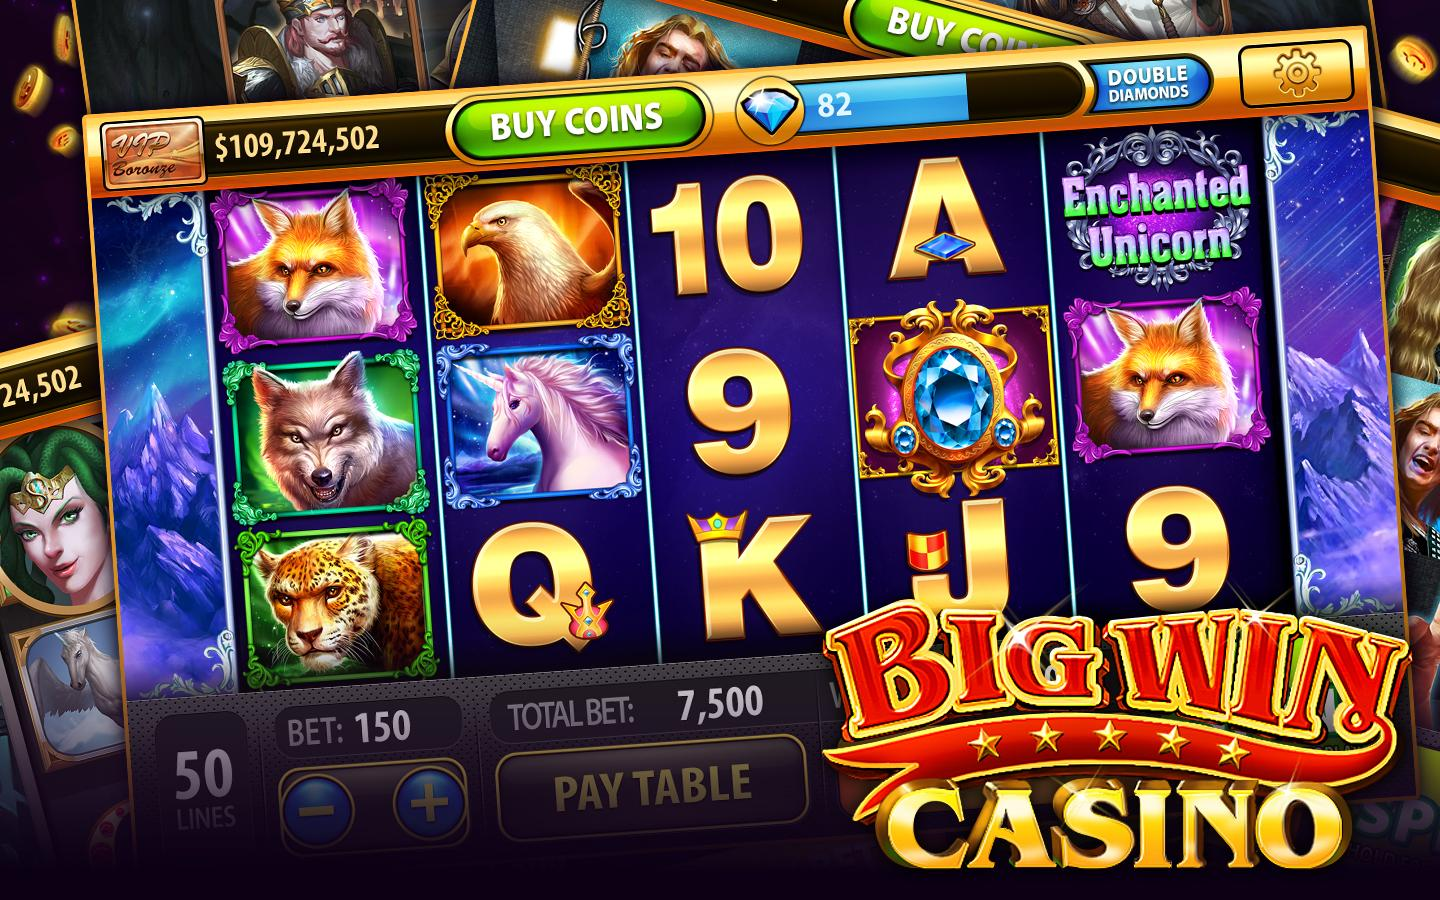 Baywatch™ Slot Machine Game to Play Free in IGTs Online Casinos